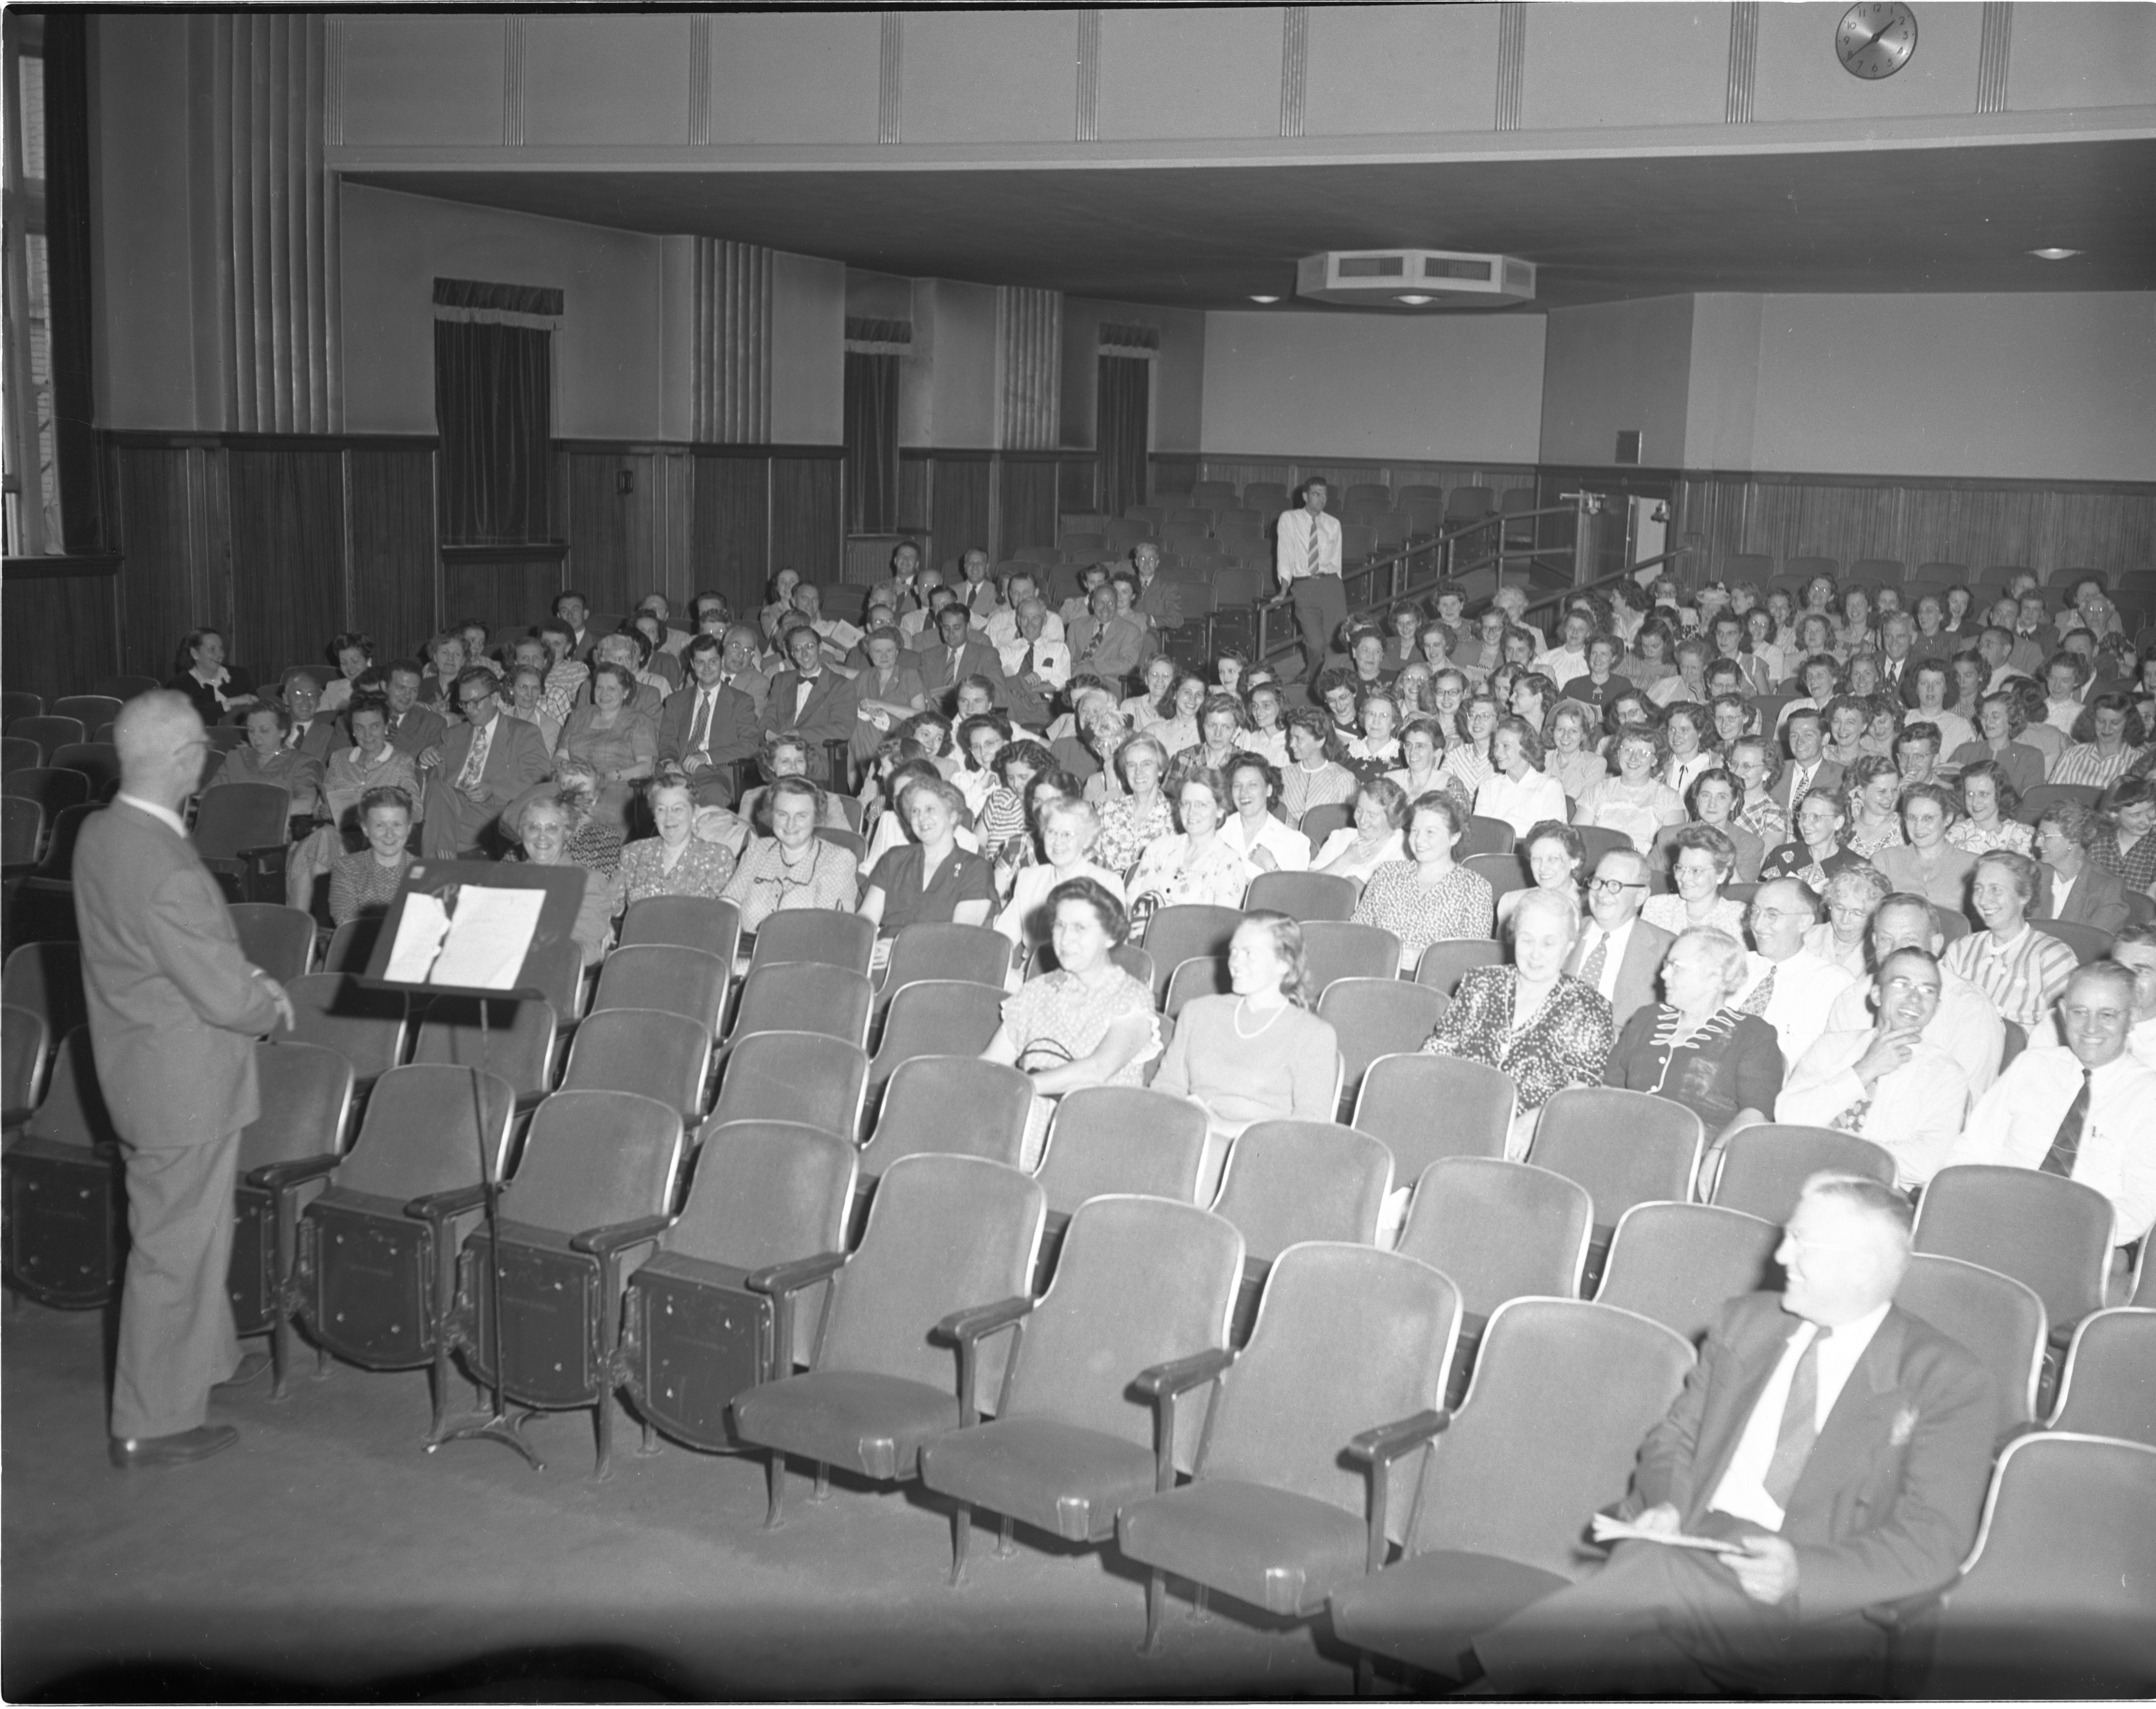 Ann Arbor Public Schools Superintendent Otto W. Haisley Speaks To Teachers At An All-Faculty Meeting, September 1948 image